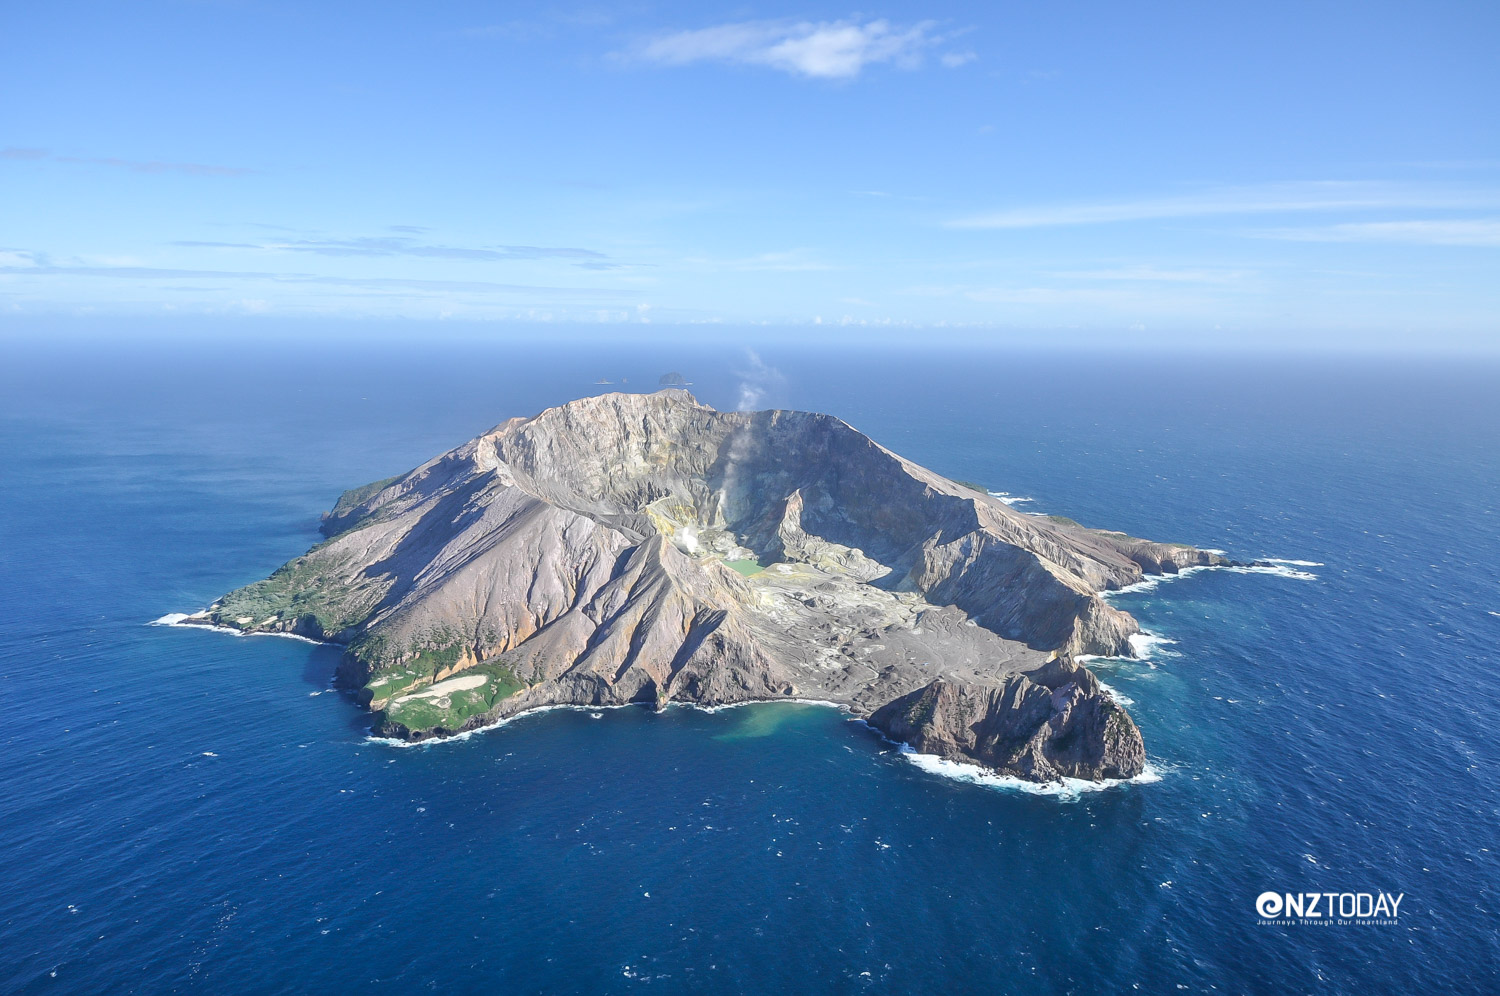 Flying in affords a clear view of the collapsed volcano crater that has become the landing site for both boats and helicopters; as well as the site of historical sulphur mine buildings and equipment